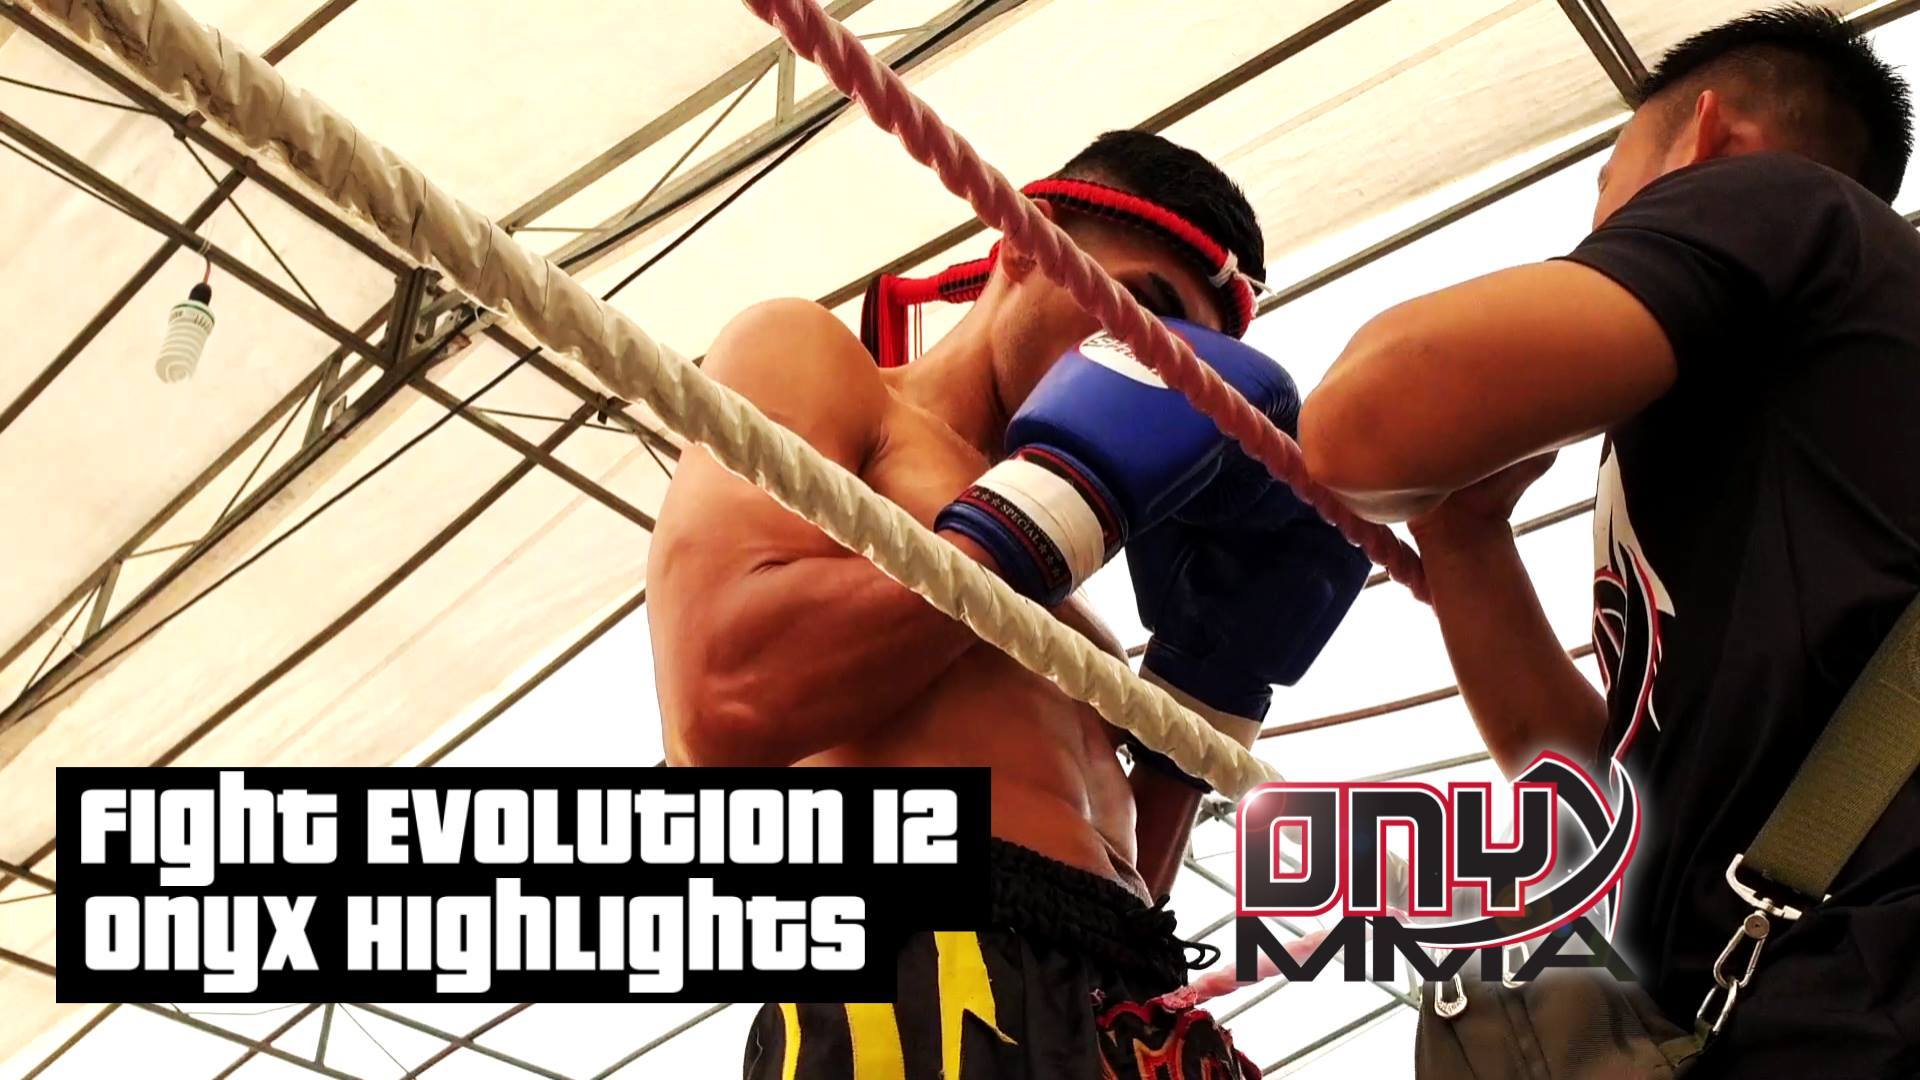 Fight Evolution 12 - Onyx Highlights